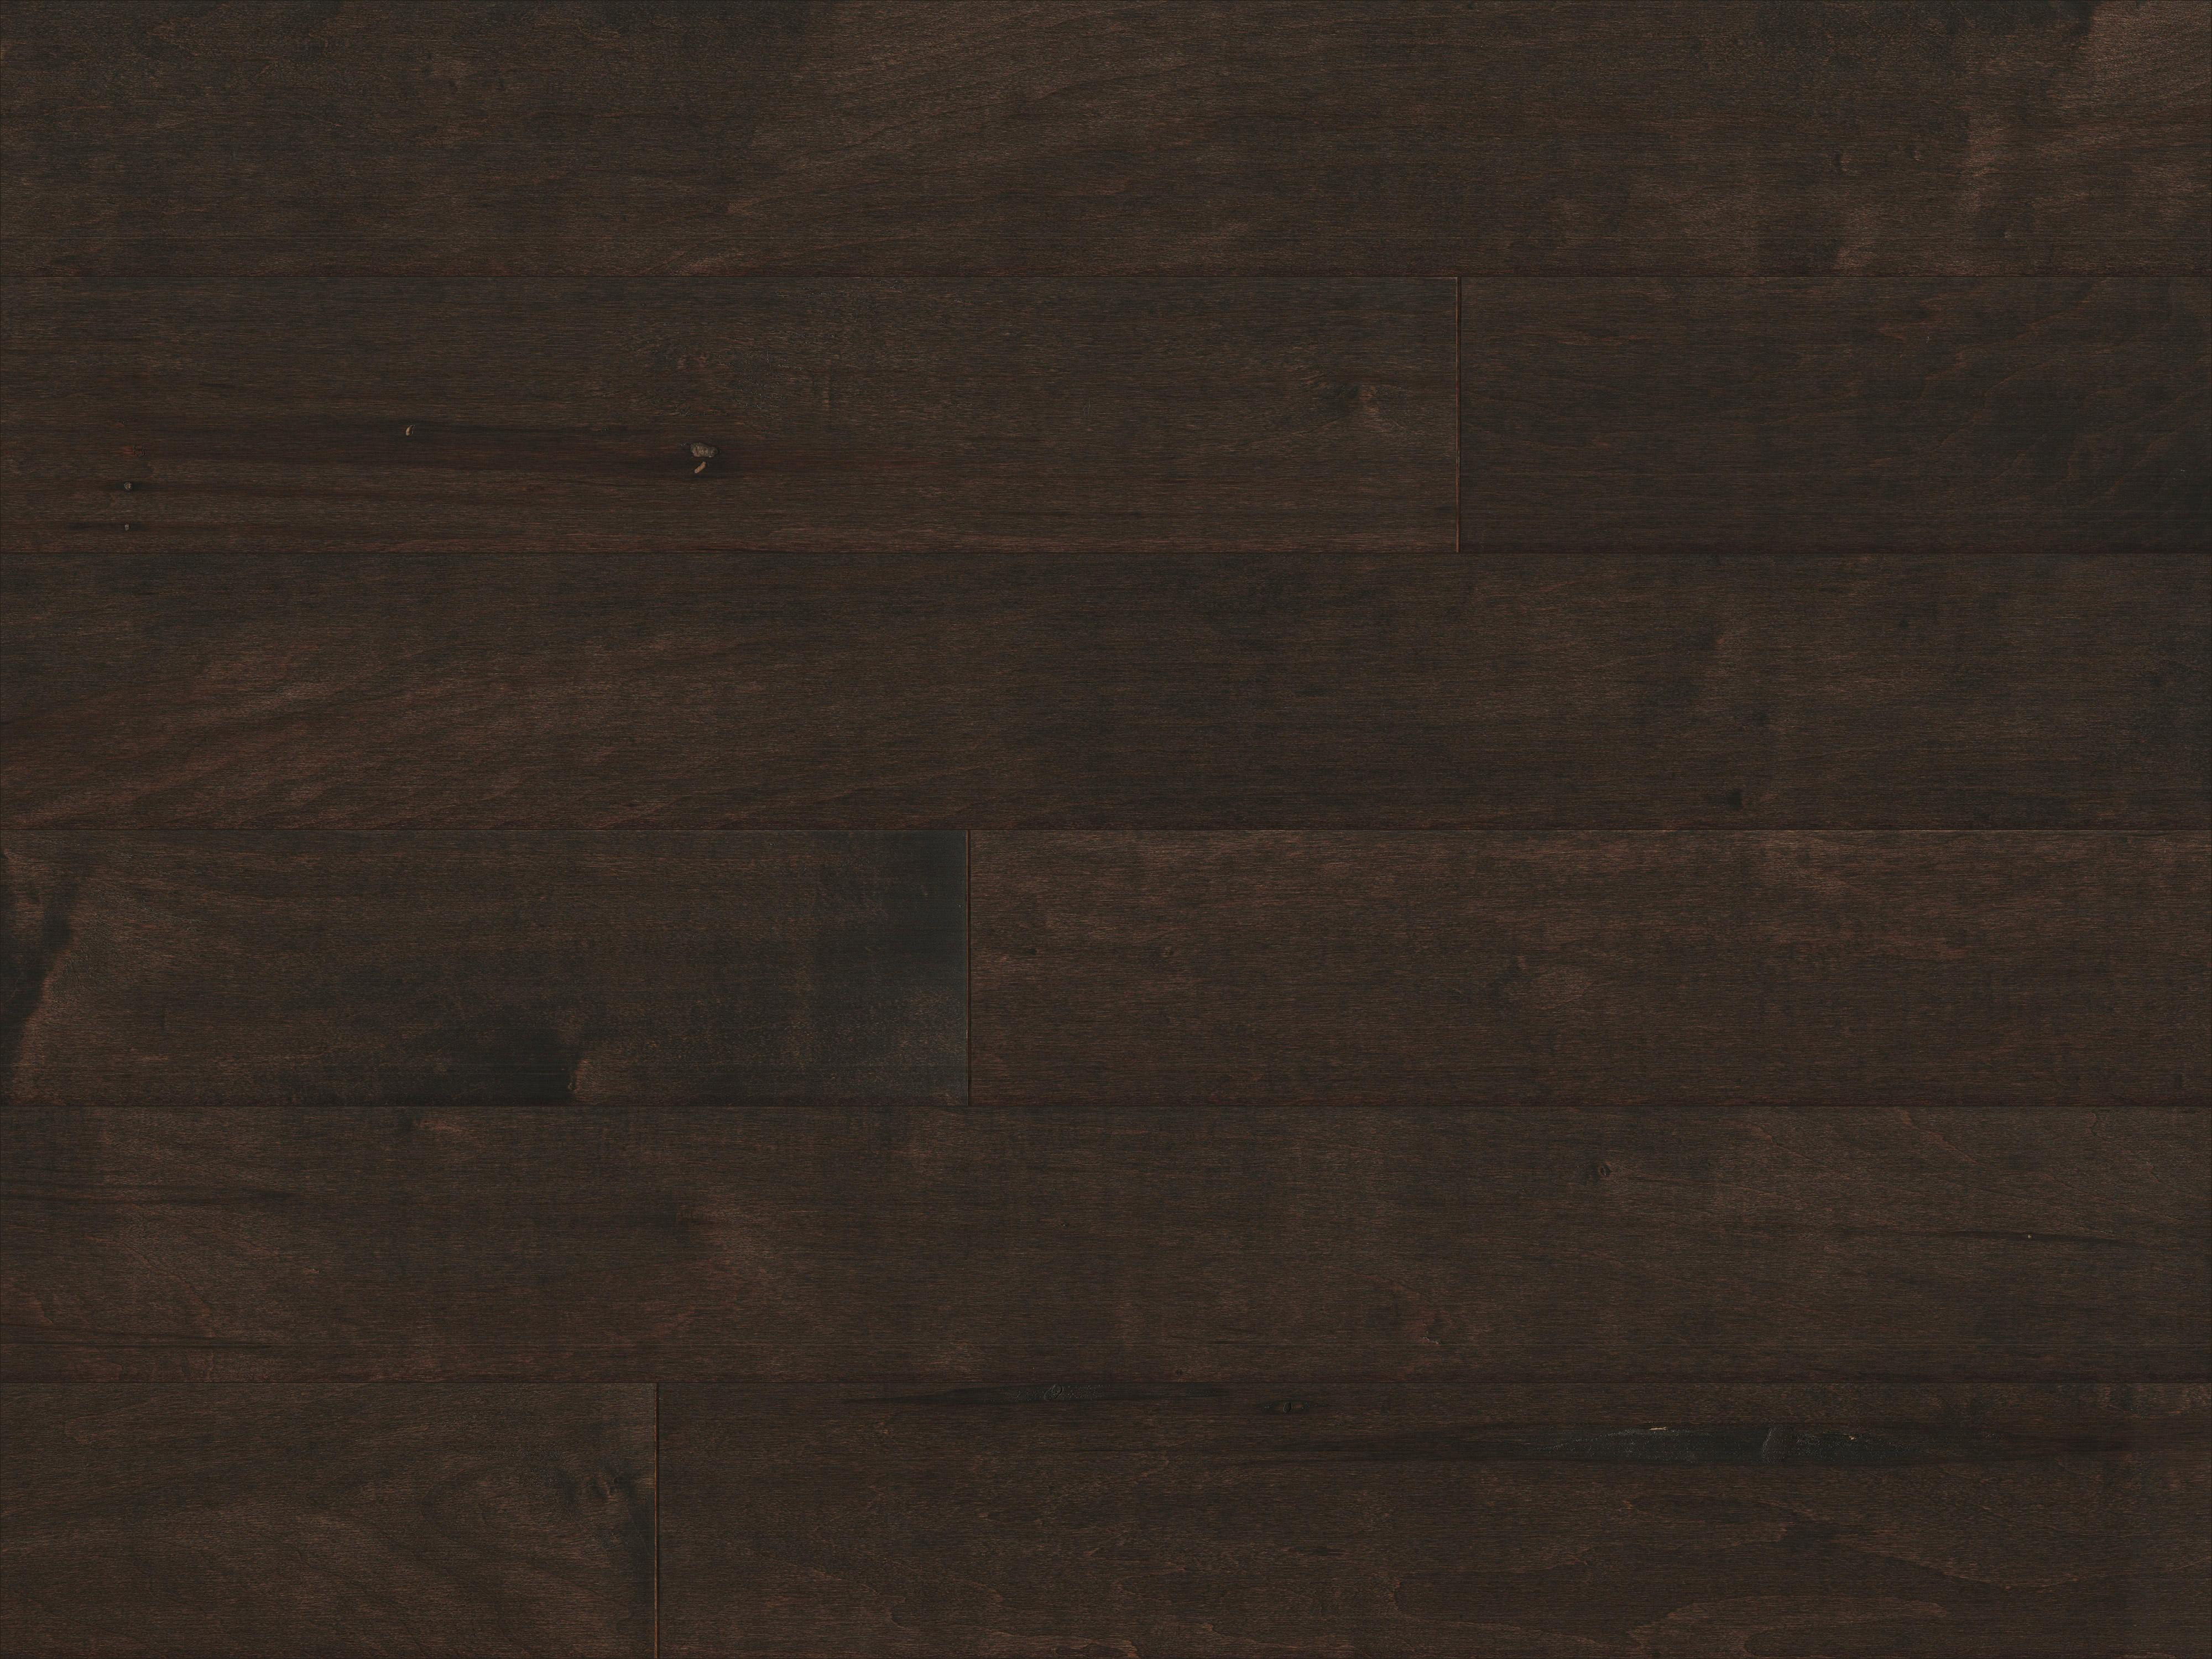 hickory hardwood floor stain colors of mullican ridgecrest maple cappuccino 1 2 thick 5 wide engineered throughout mullican ridgecrest maple cappuccino 1 2 thick 5 wide engineered hardwood flooring